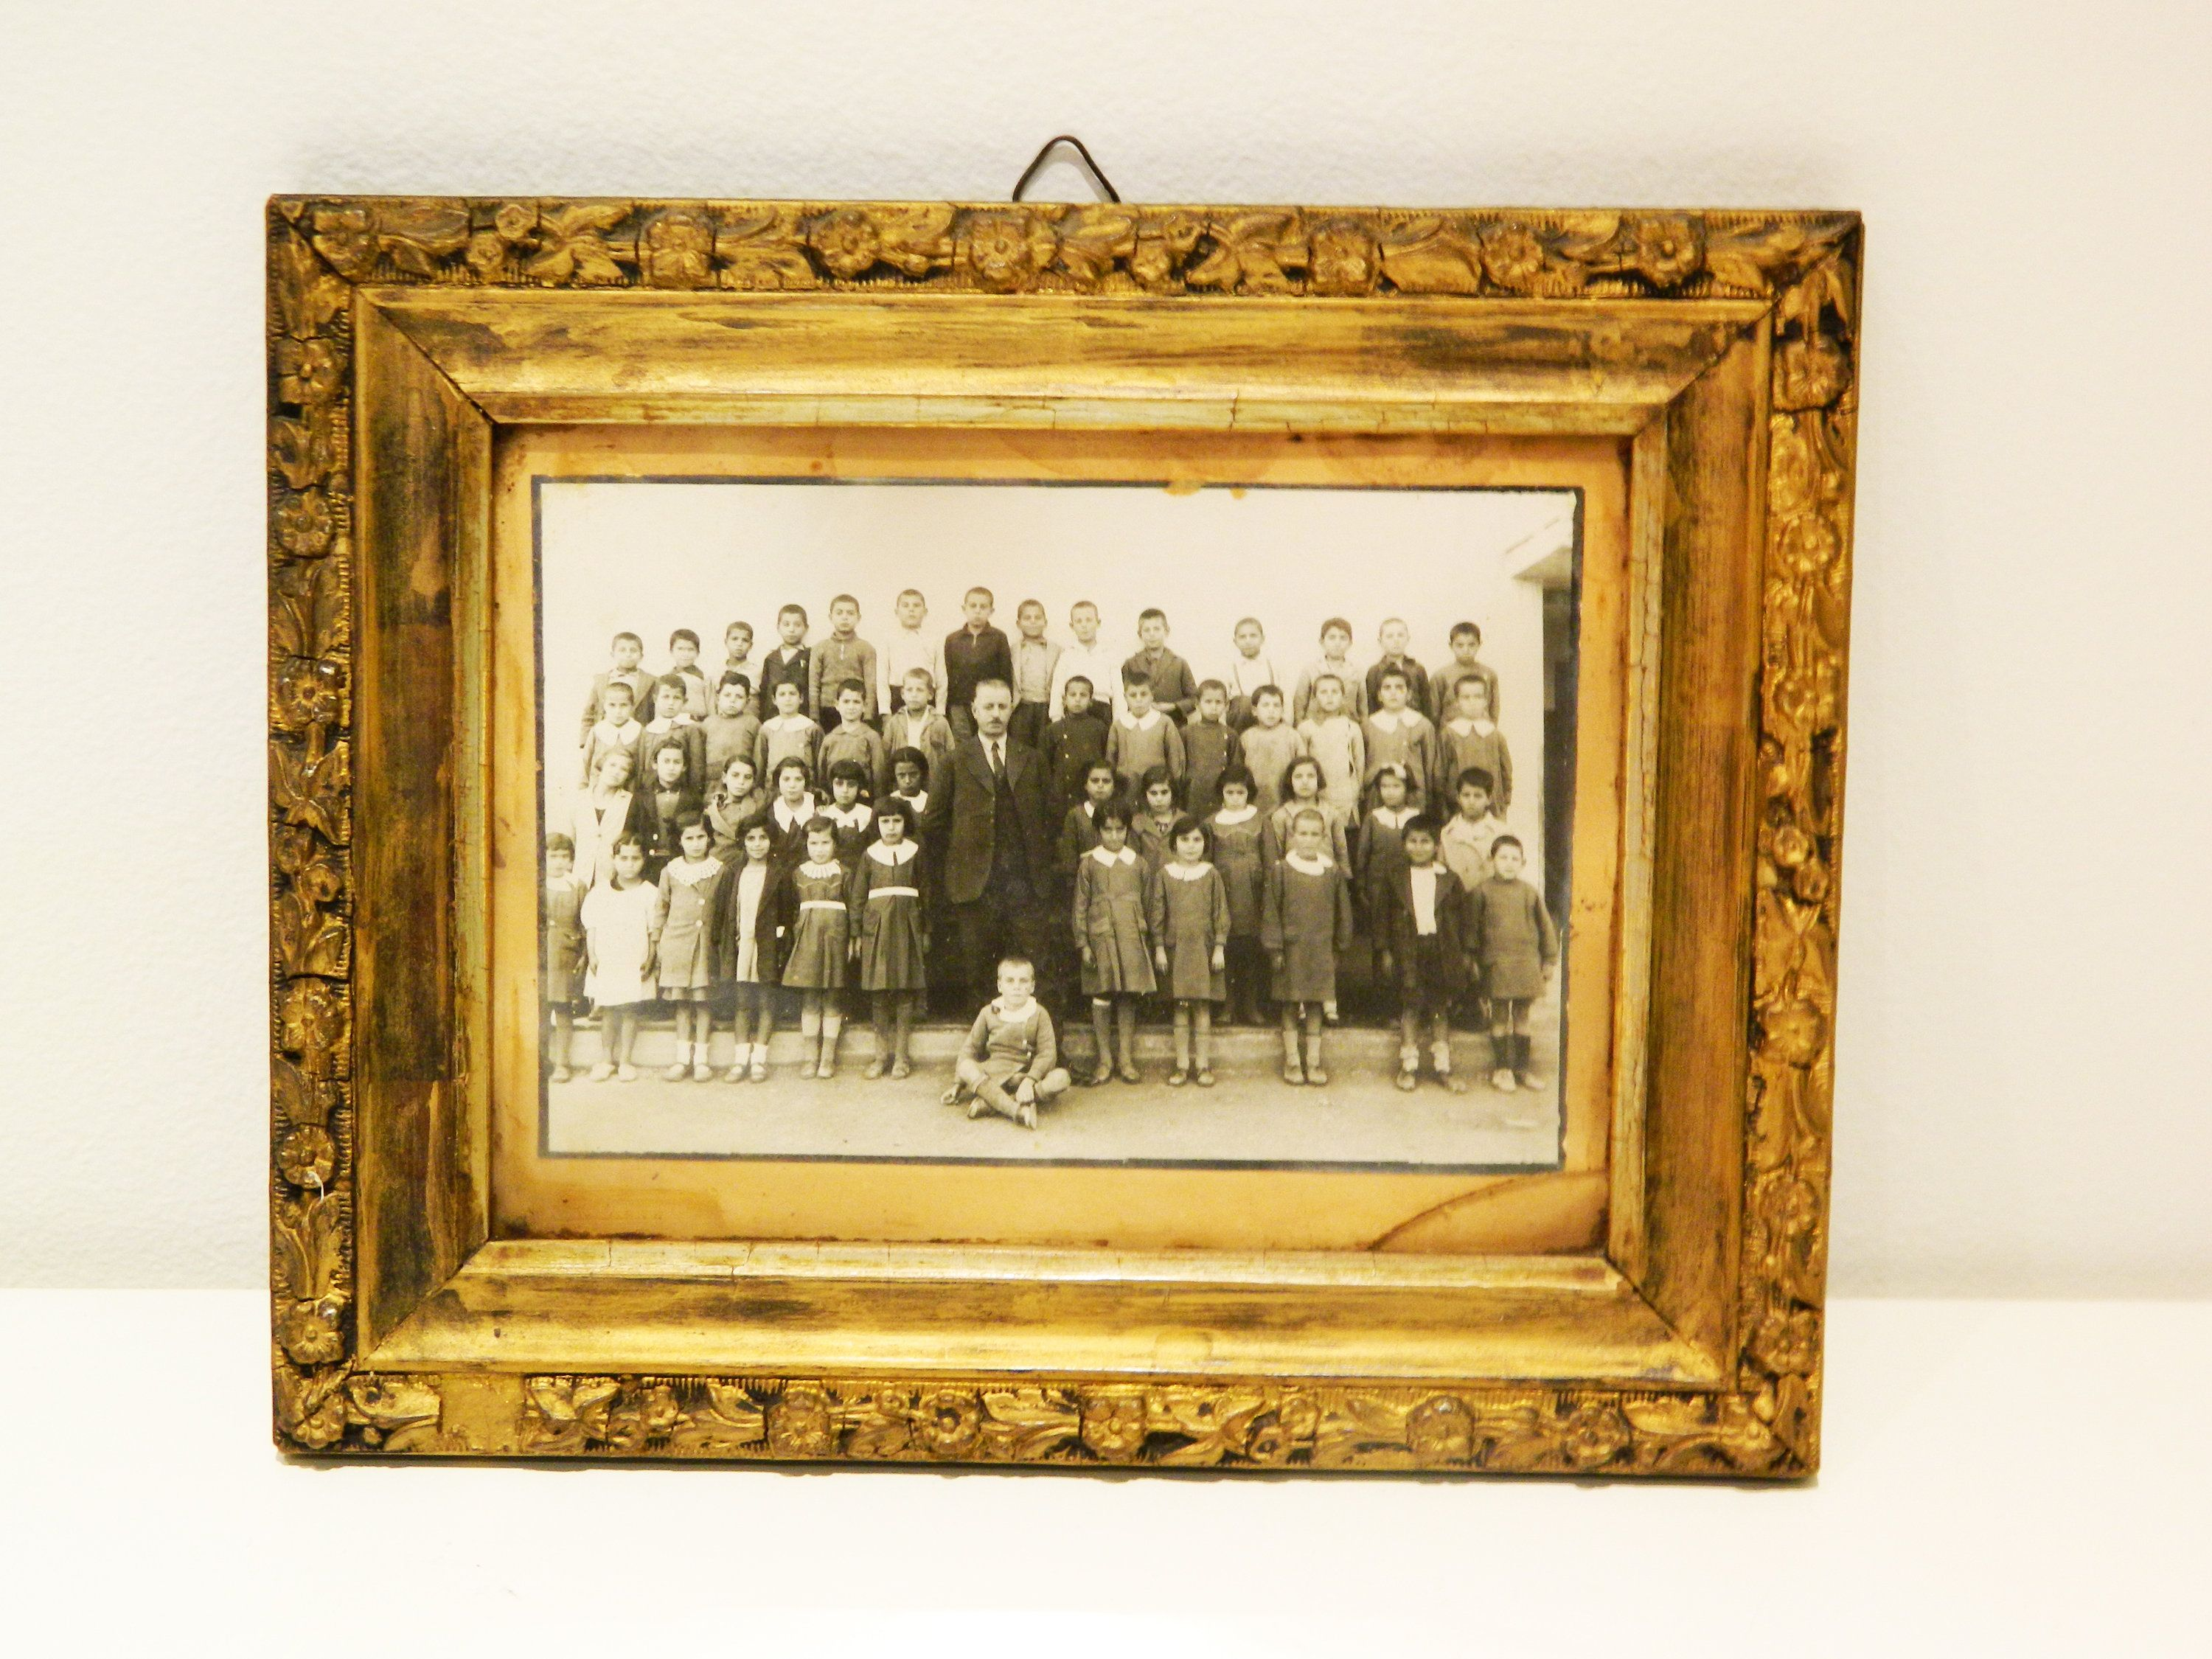 Antique Black And White Photograph Framedvintage Wooden Frame Black And White Photographs Frame Hanging Art